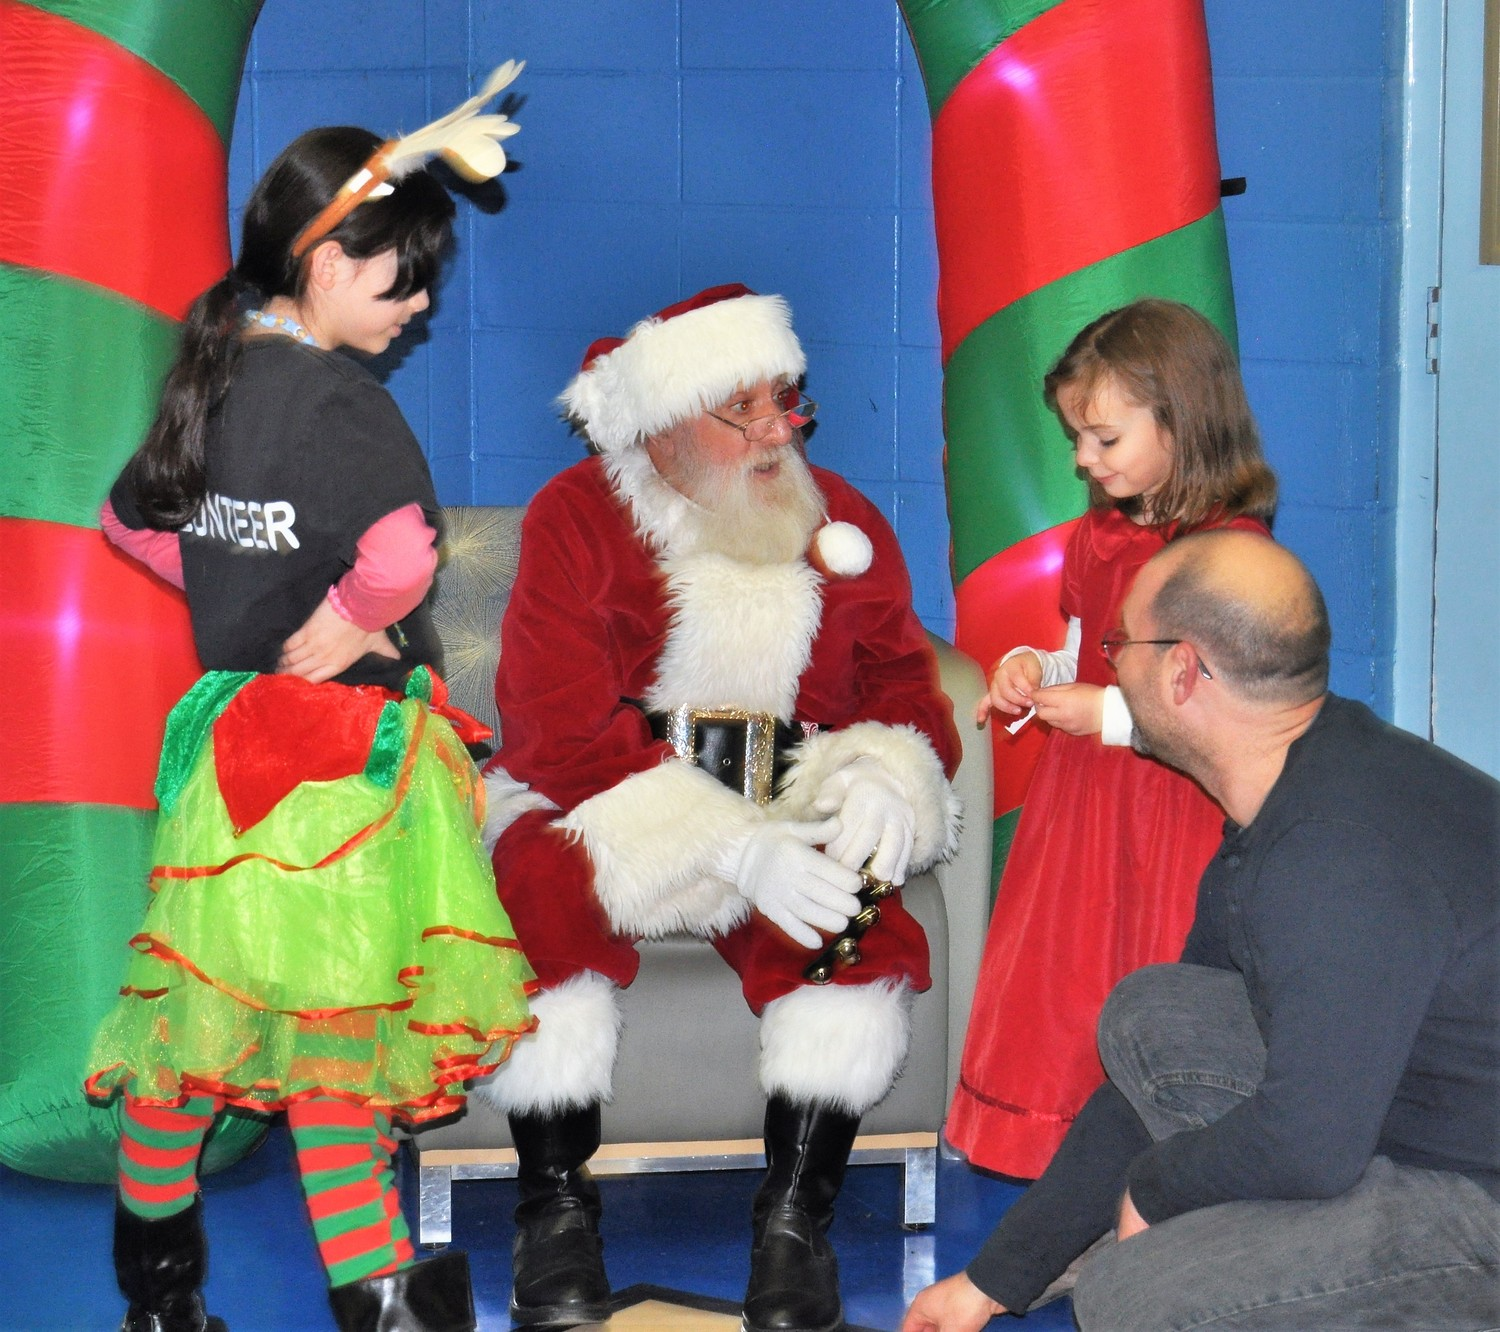 Santa will be visiting with children and families at the Newman YMCA on December 12th from 5:30 – 7:30 pm.  Register at the Newman YMCA Welcome Center.